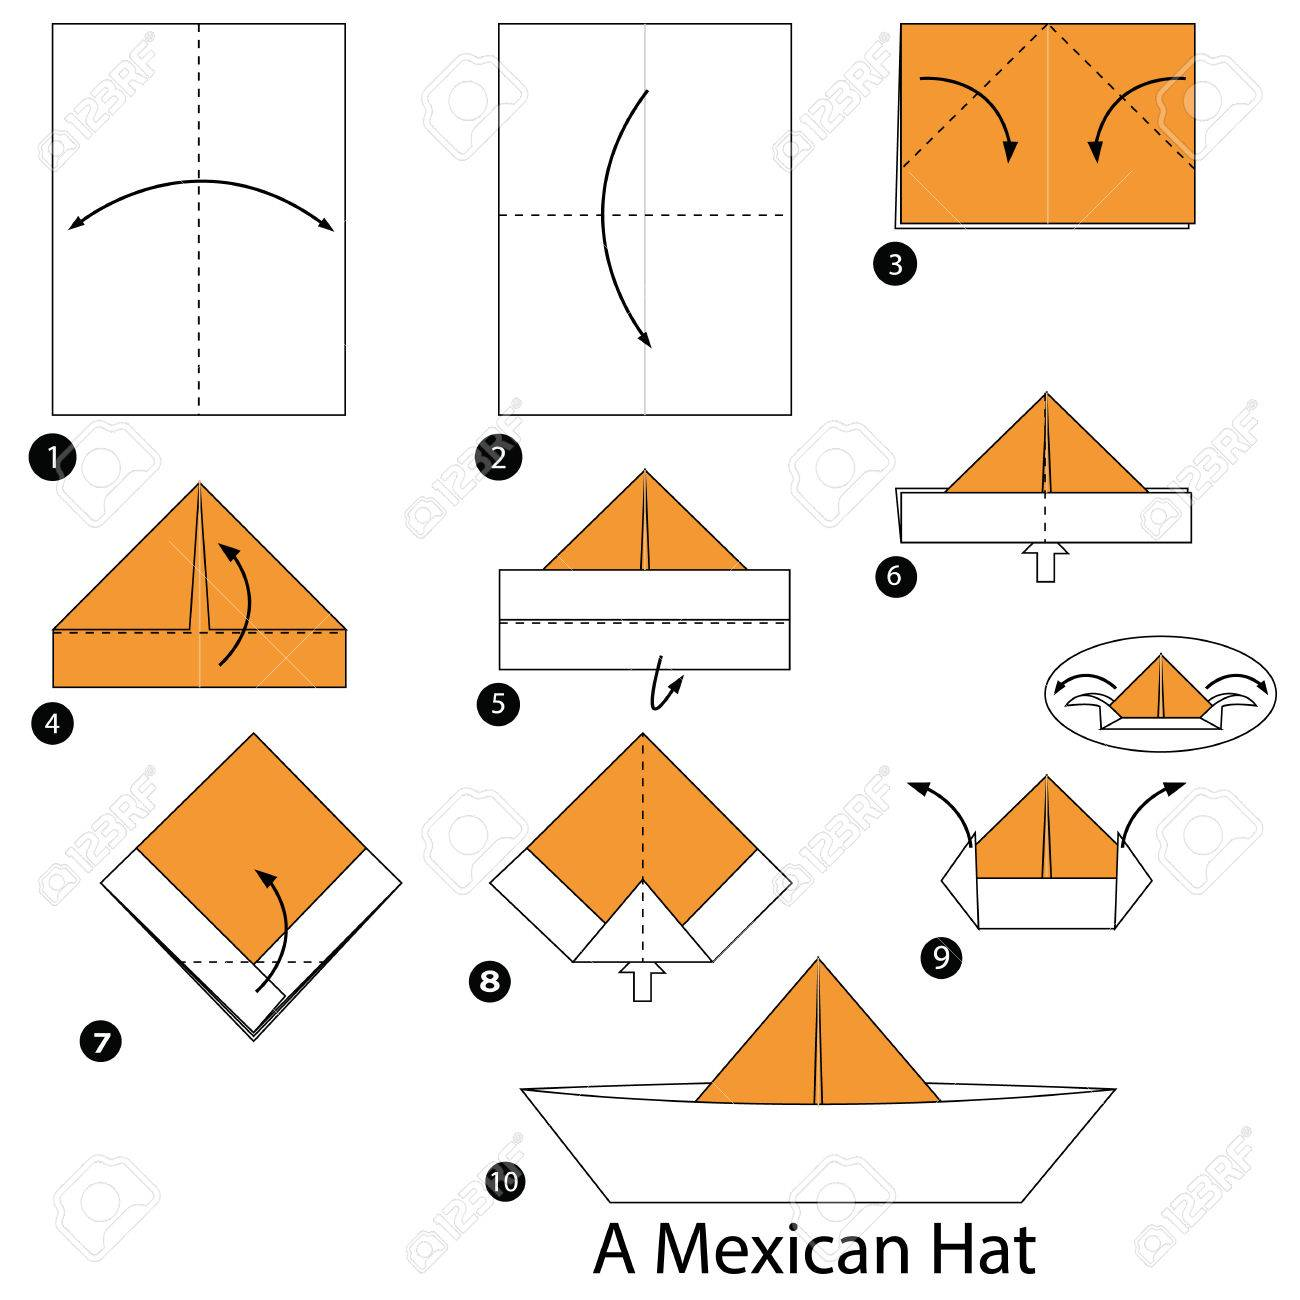 48c8587fa8e13 step by step instructions how to make origami A Mexican Hat. Stock Vector -  61260560